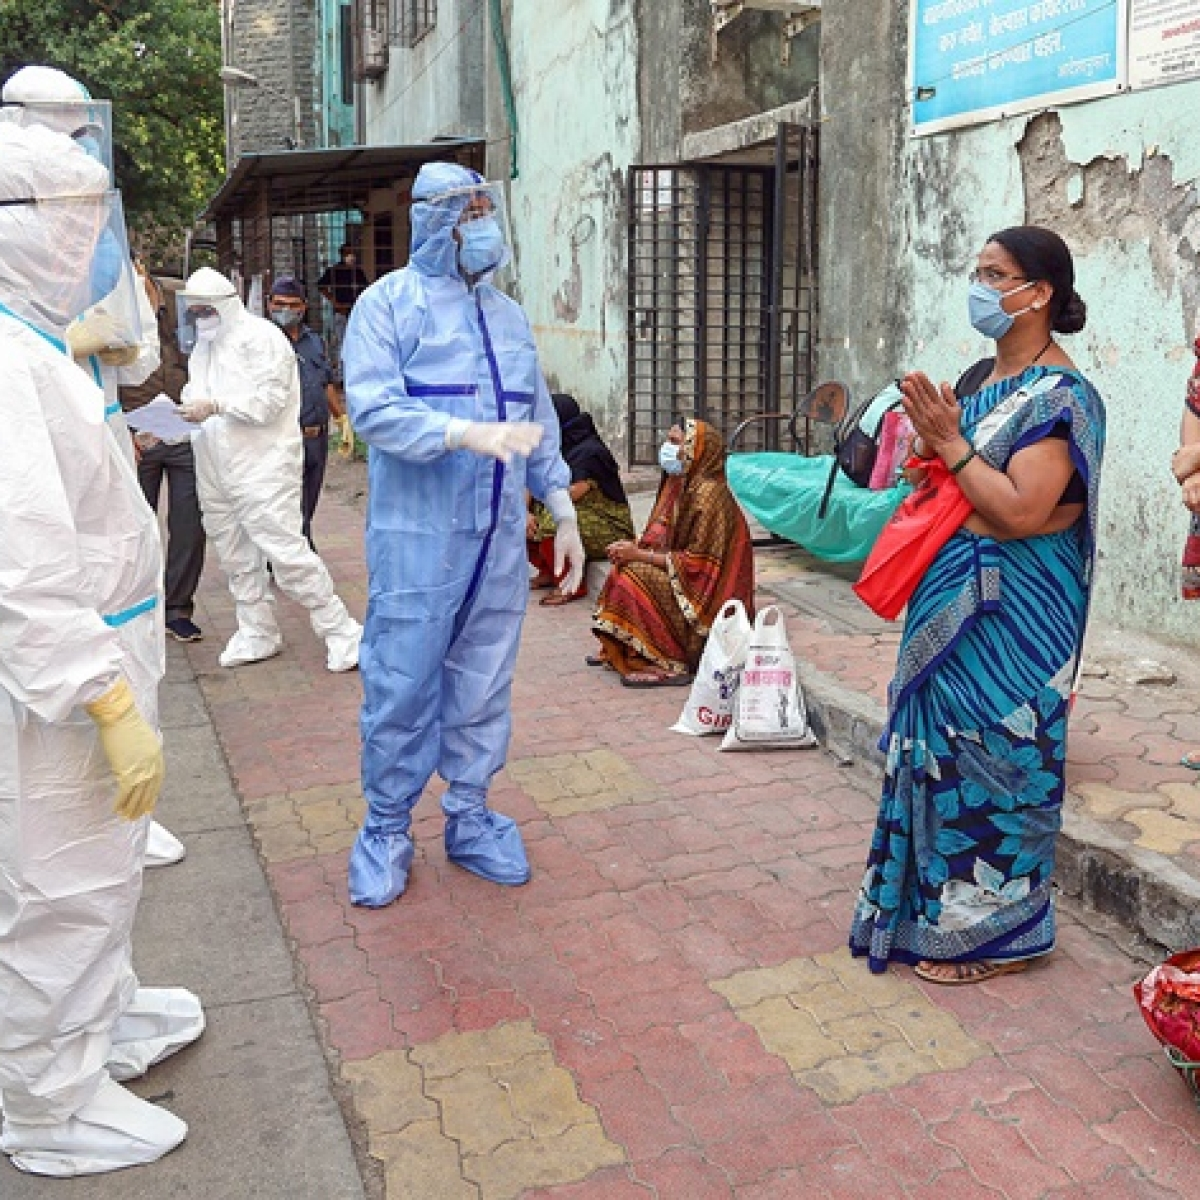 Coronavirus in Thane: List of COVID-19 containment zones in Thane city, Kalwa, Diva and Mumbra issued by TMC as of June 24